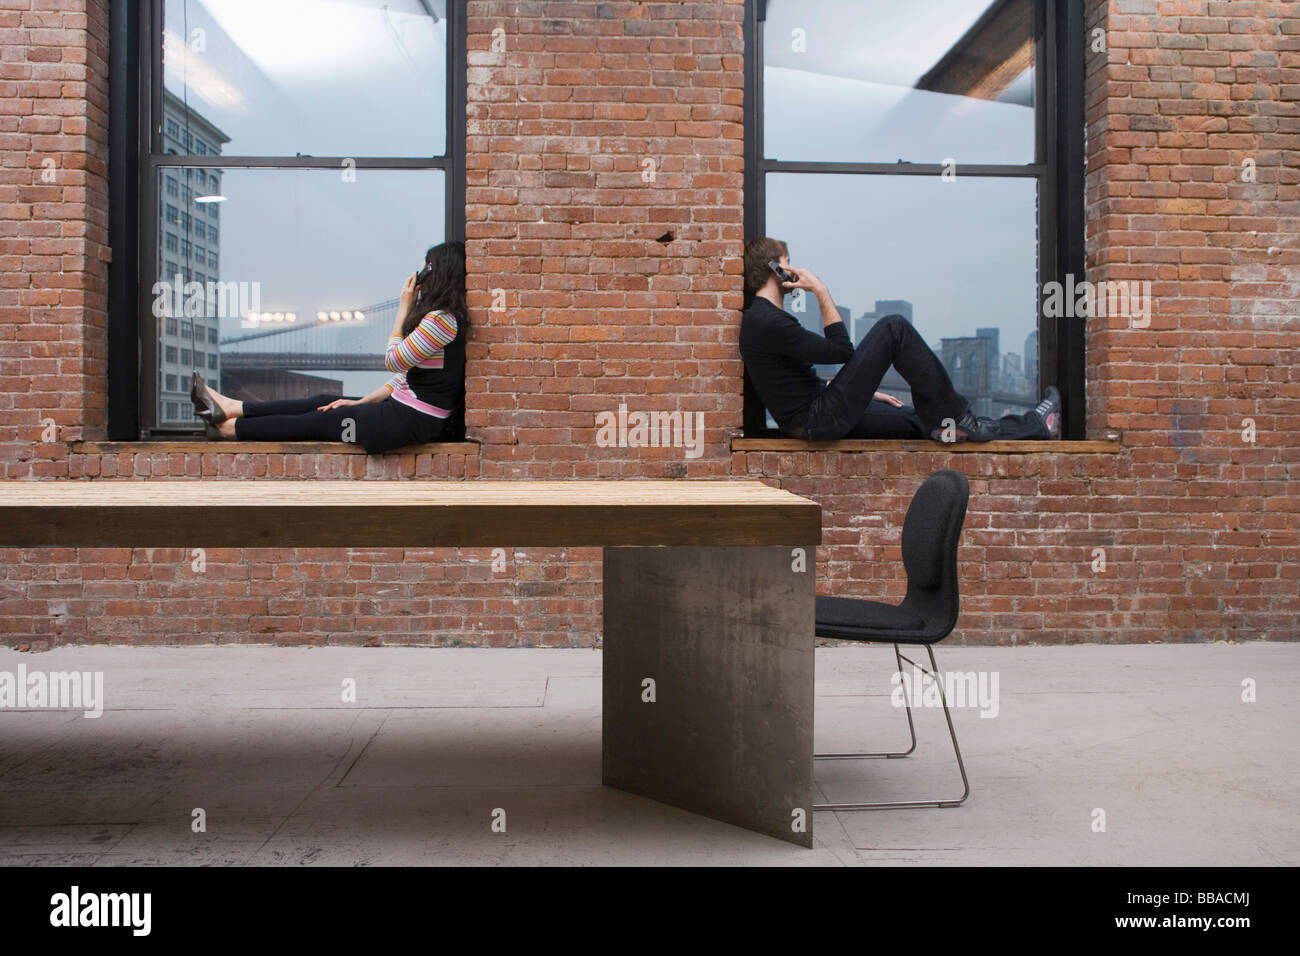 A man and woman sitting on window sills and talking on mobile phones - Stock Image